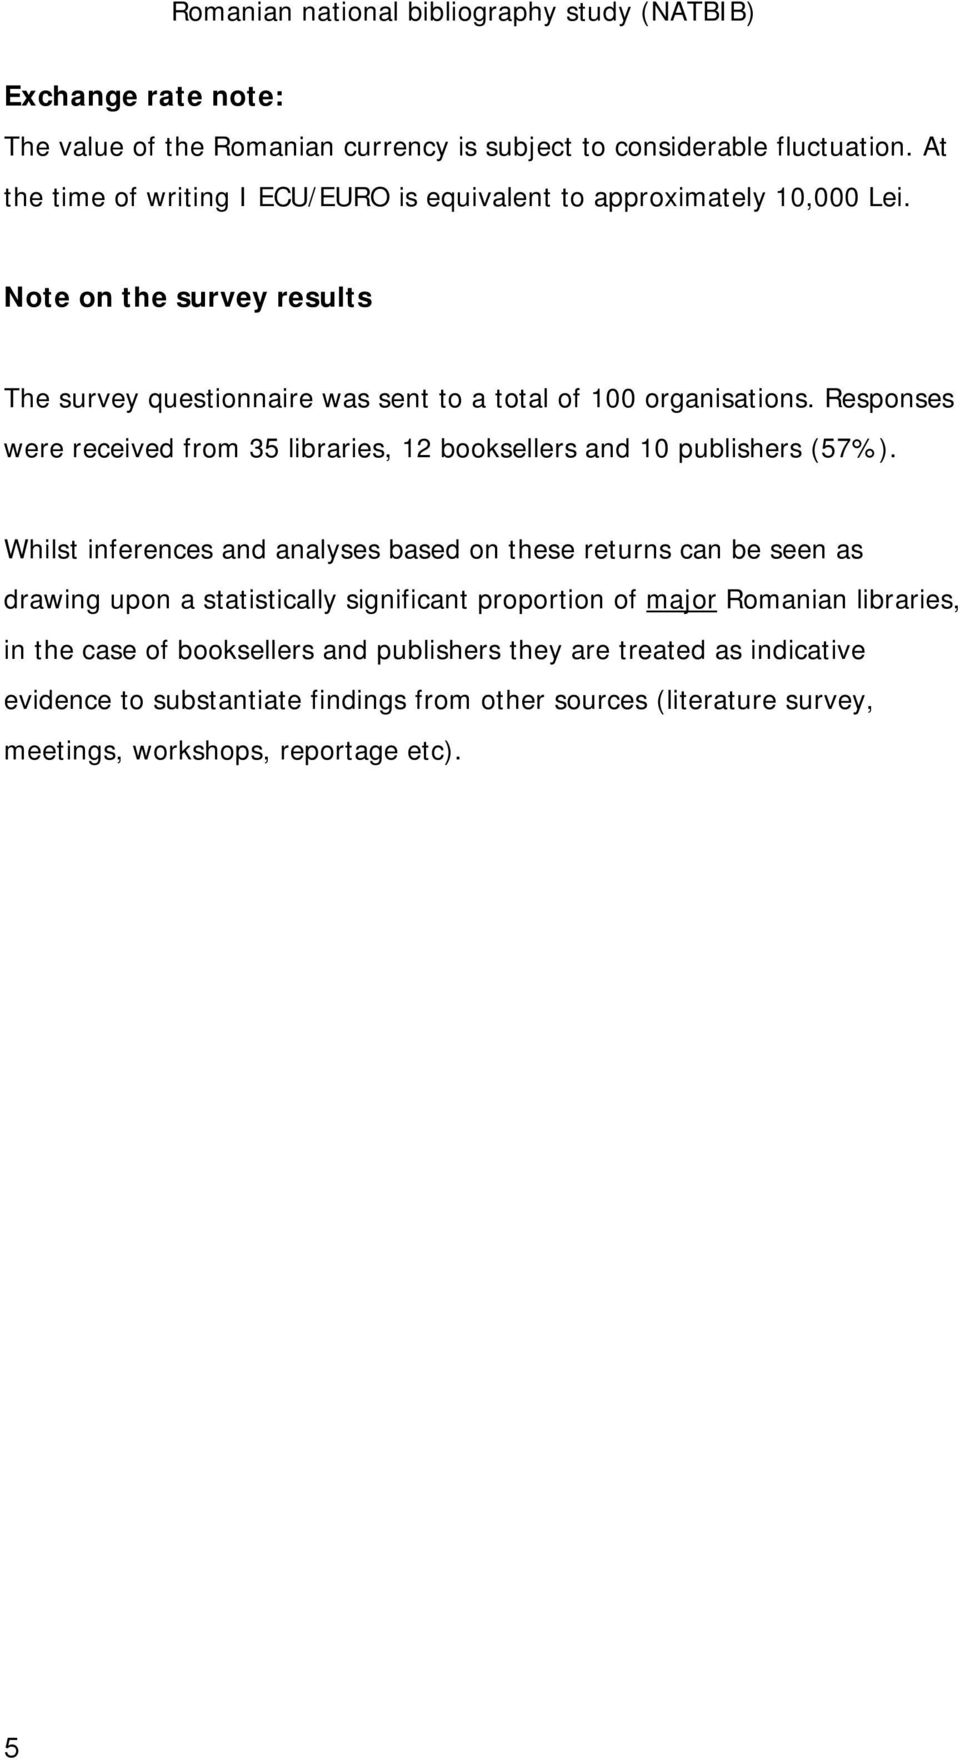 Responses were received from 35 libraries, 12 booksellers and 10 publishers (57%).